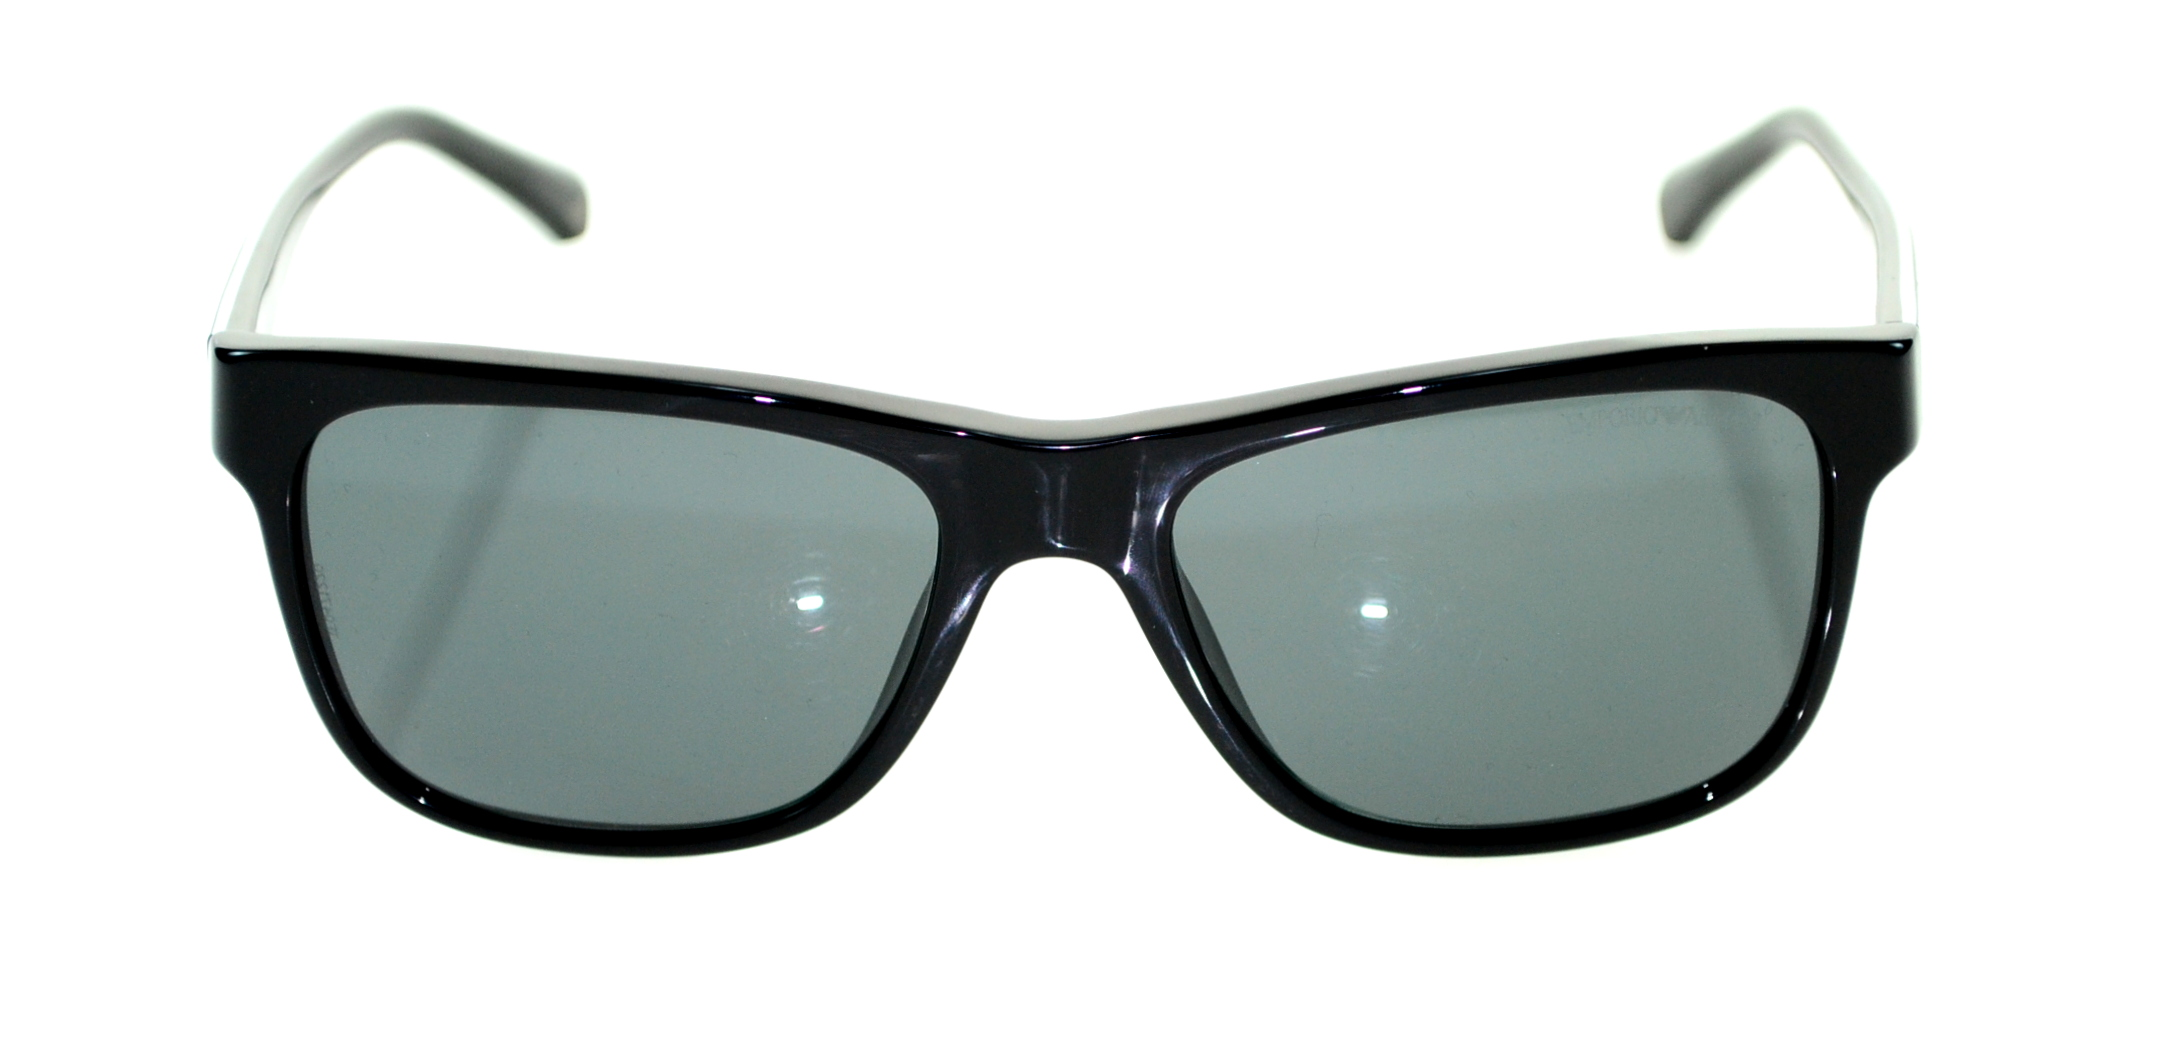 designer brand sunglasses  accessories sunglasses